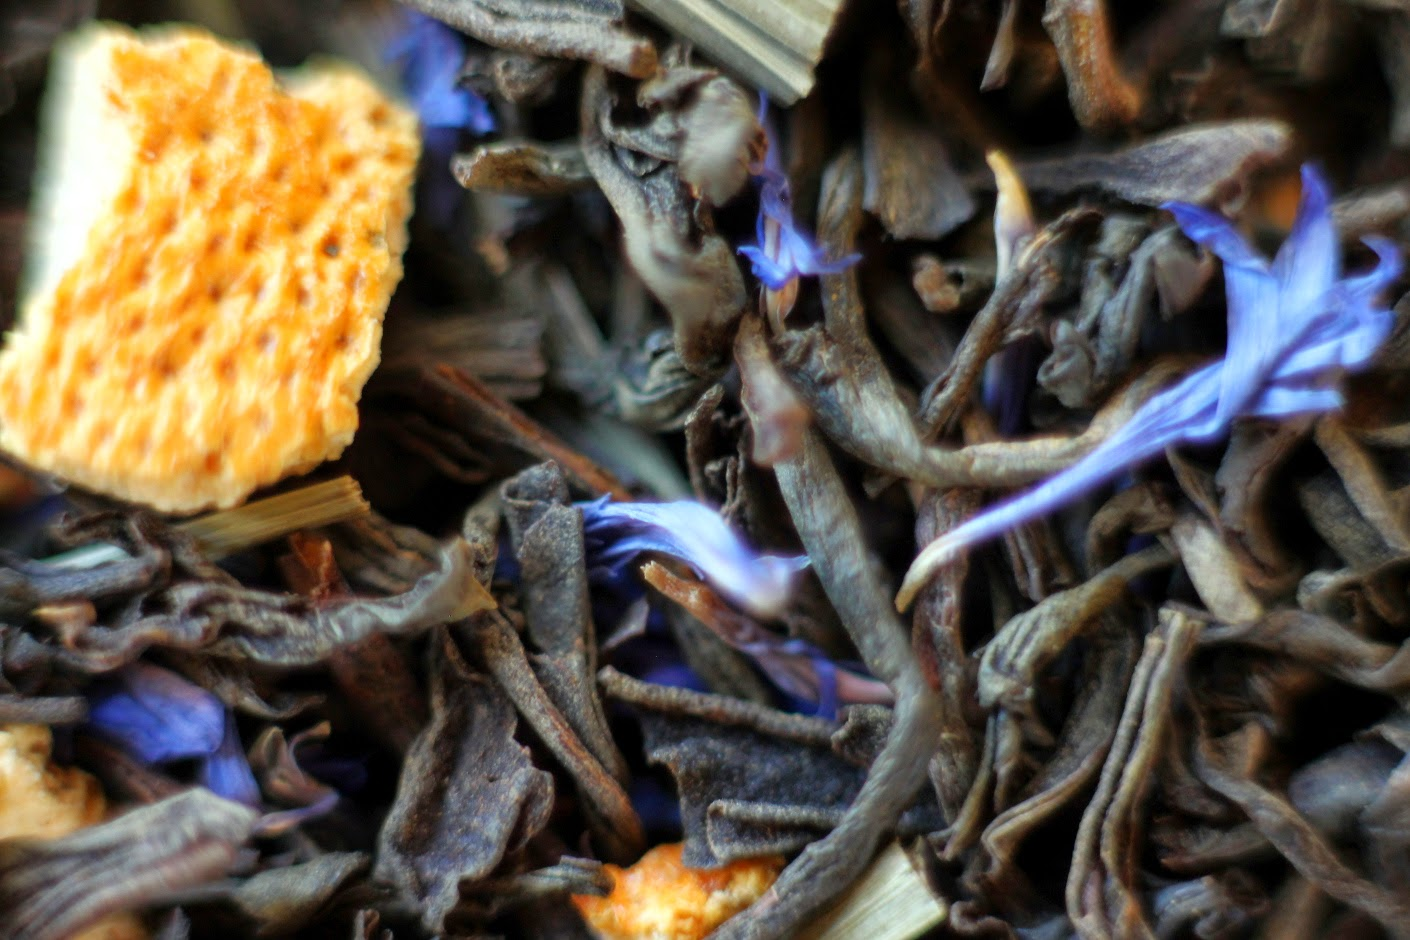 Russian Earl Grey Tea with lemongrass, orange peel, and hyacinth flowers.